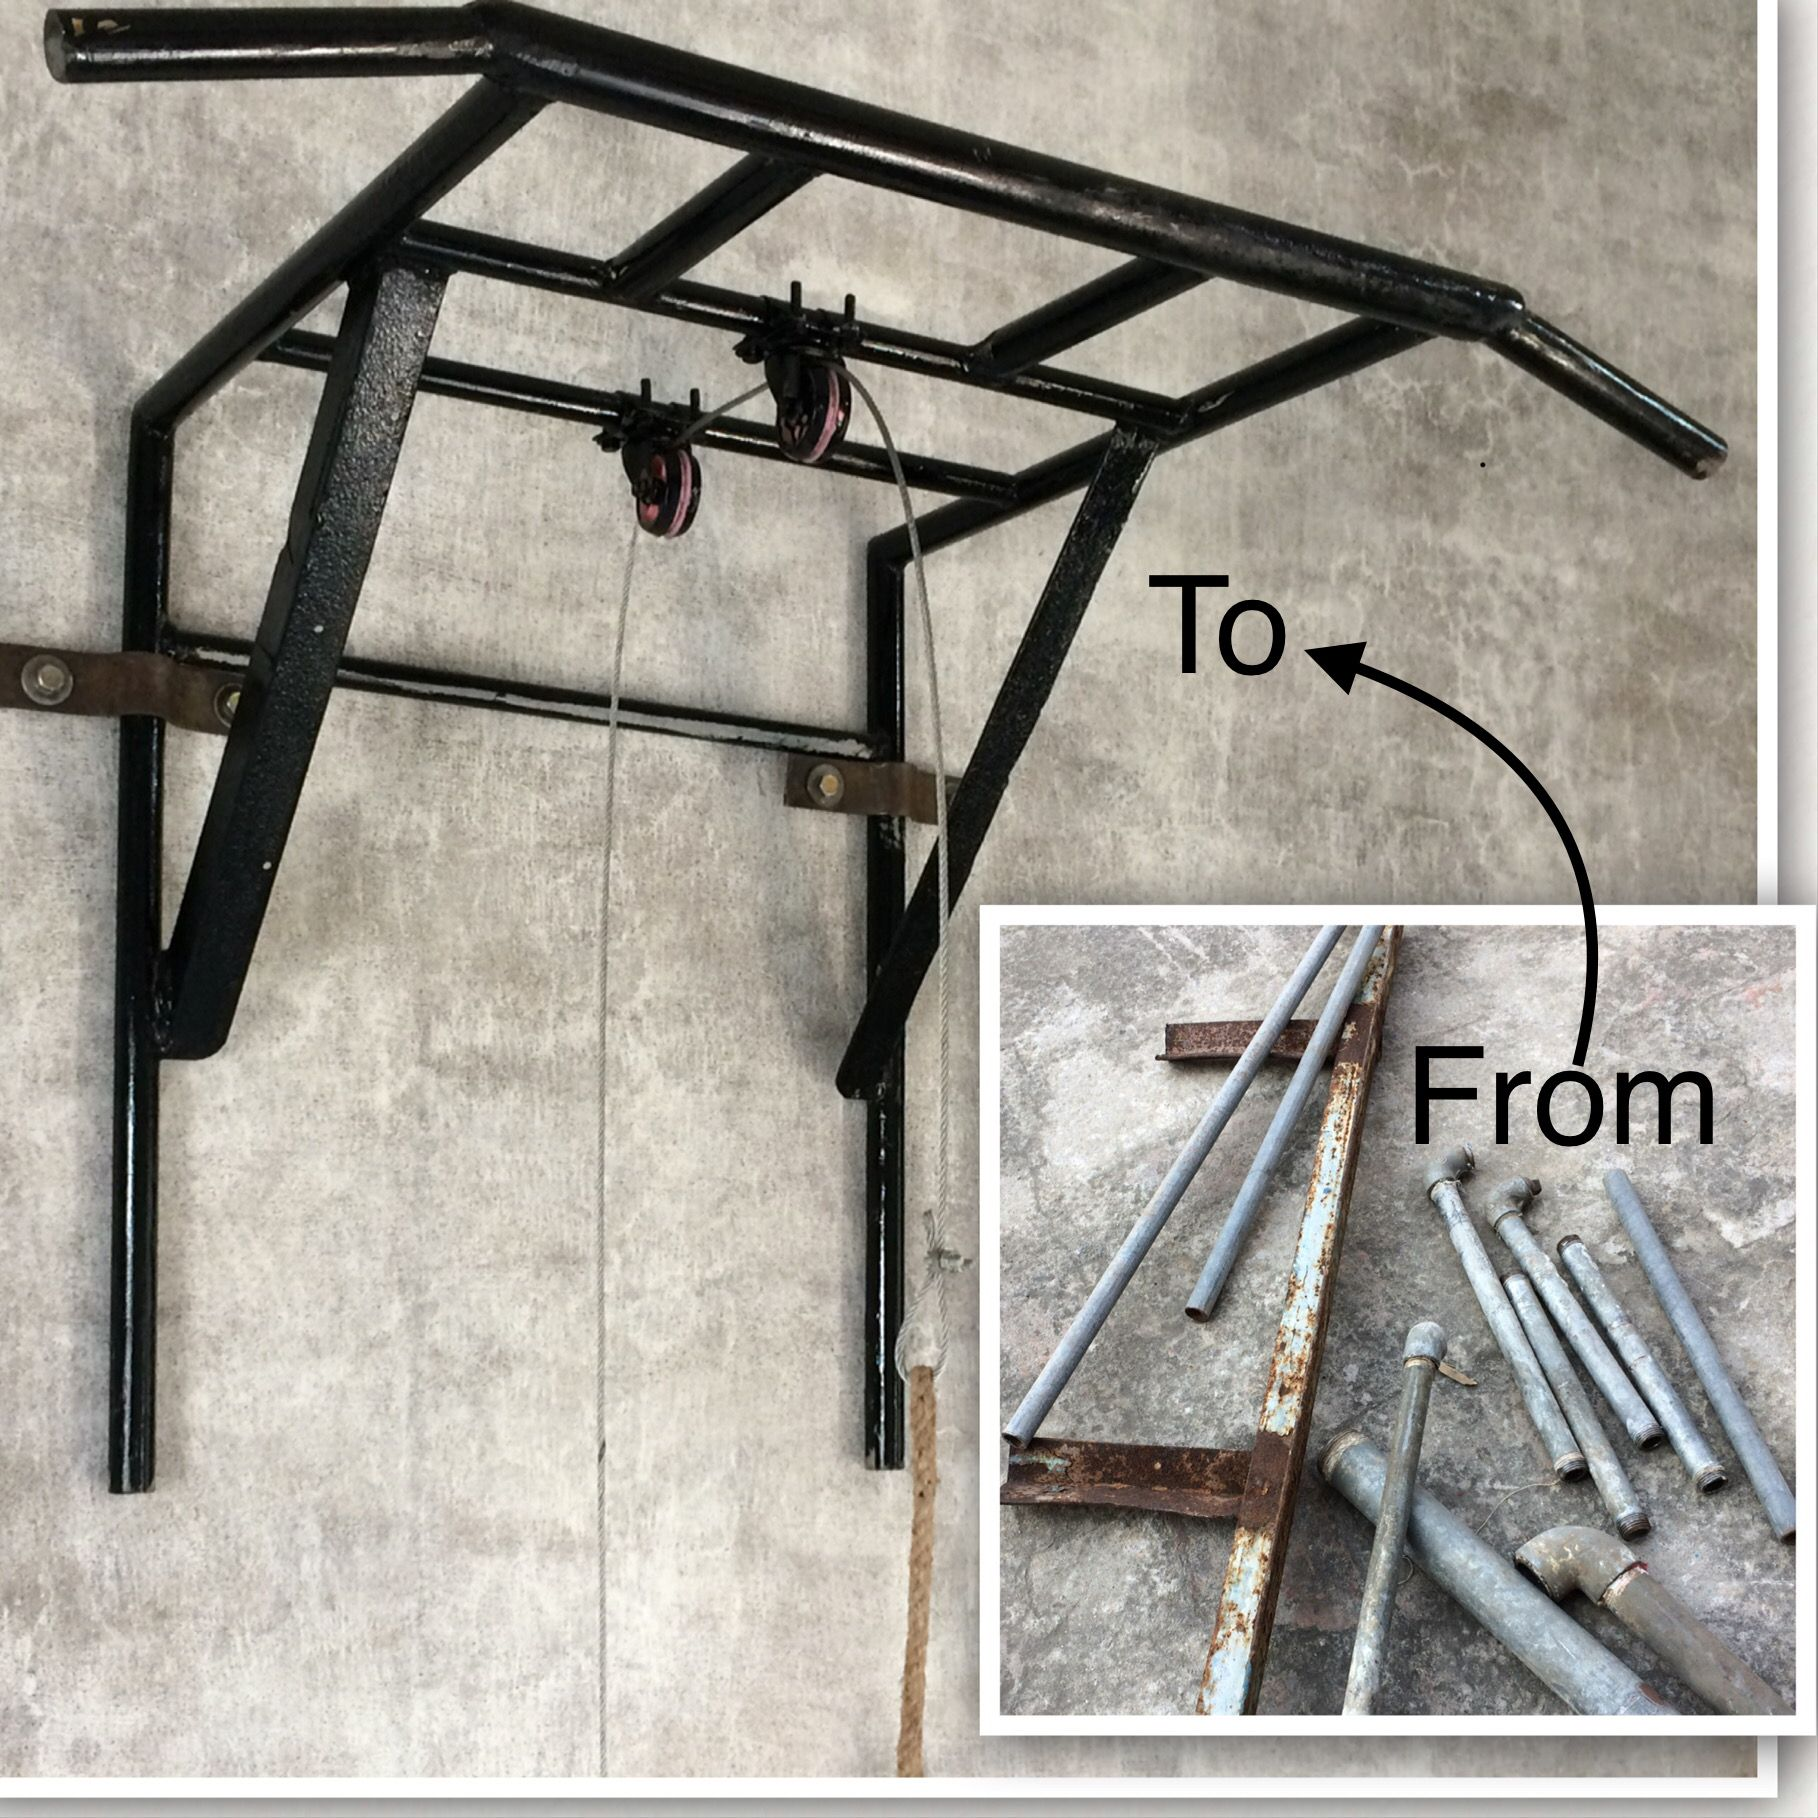 Best Gym Equipment For Workout At Home Made From Recycled Materials Diy Home Gym Home Made Gym Homemade Gym Equipment